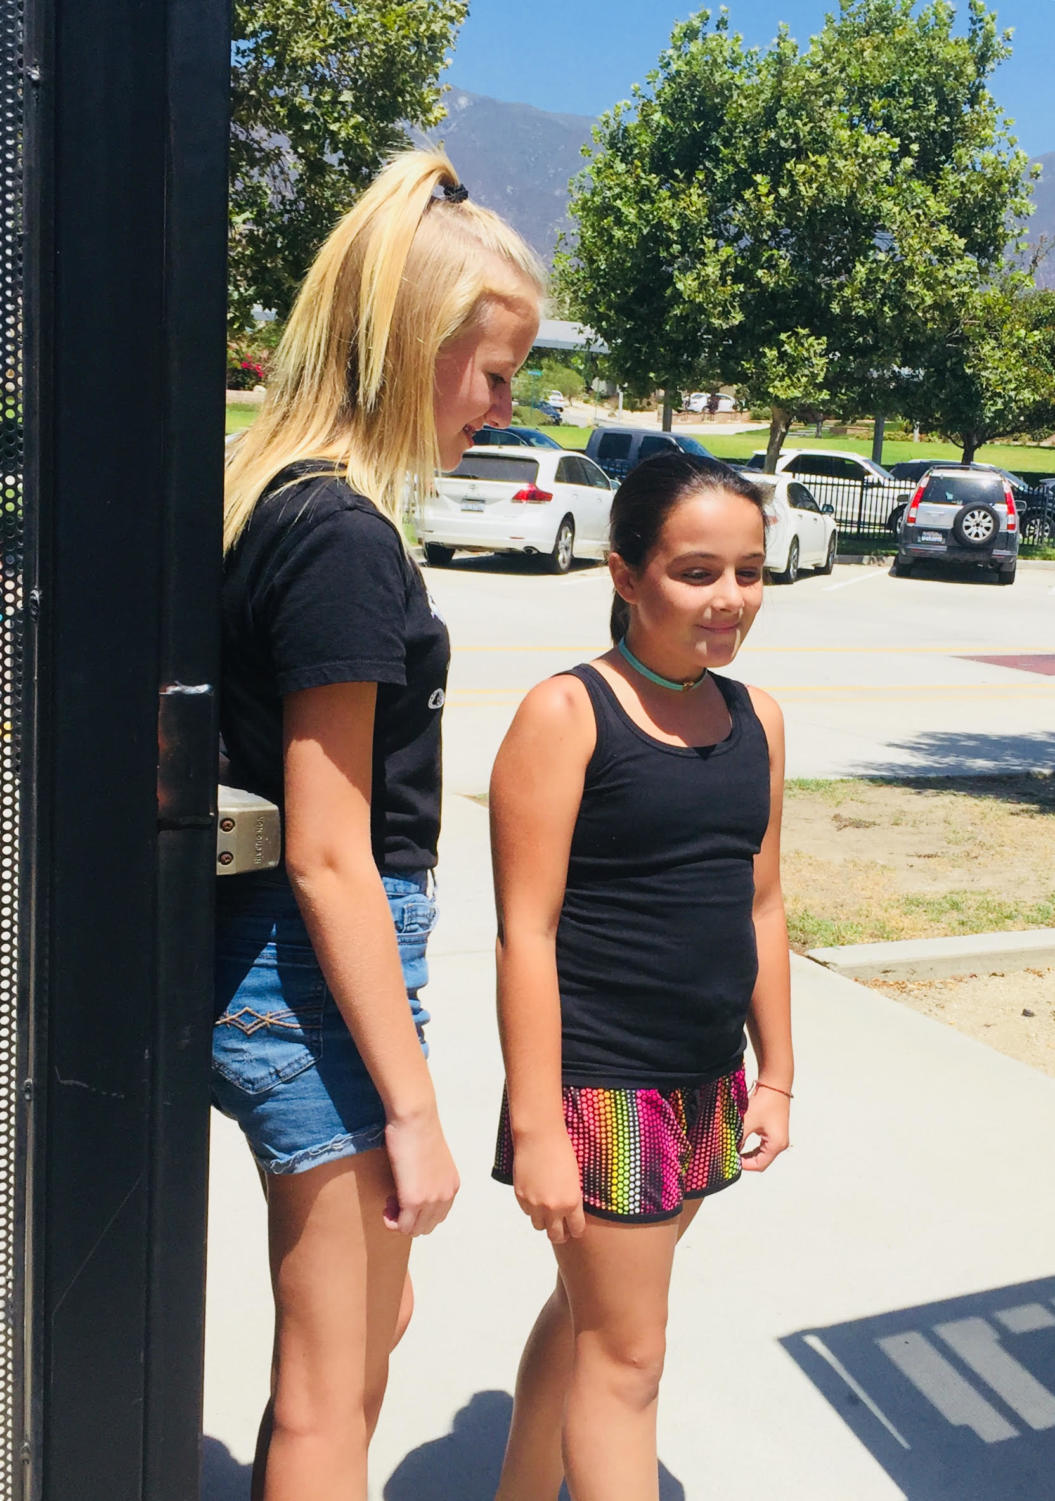 An eighth grader welcomes in a new sixth grader.